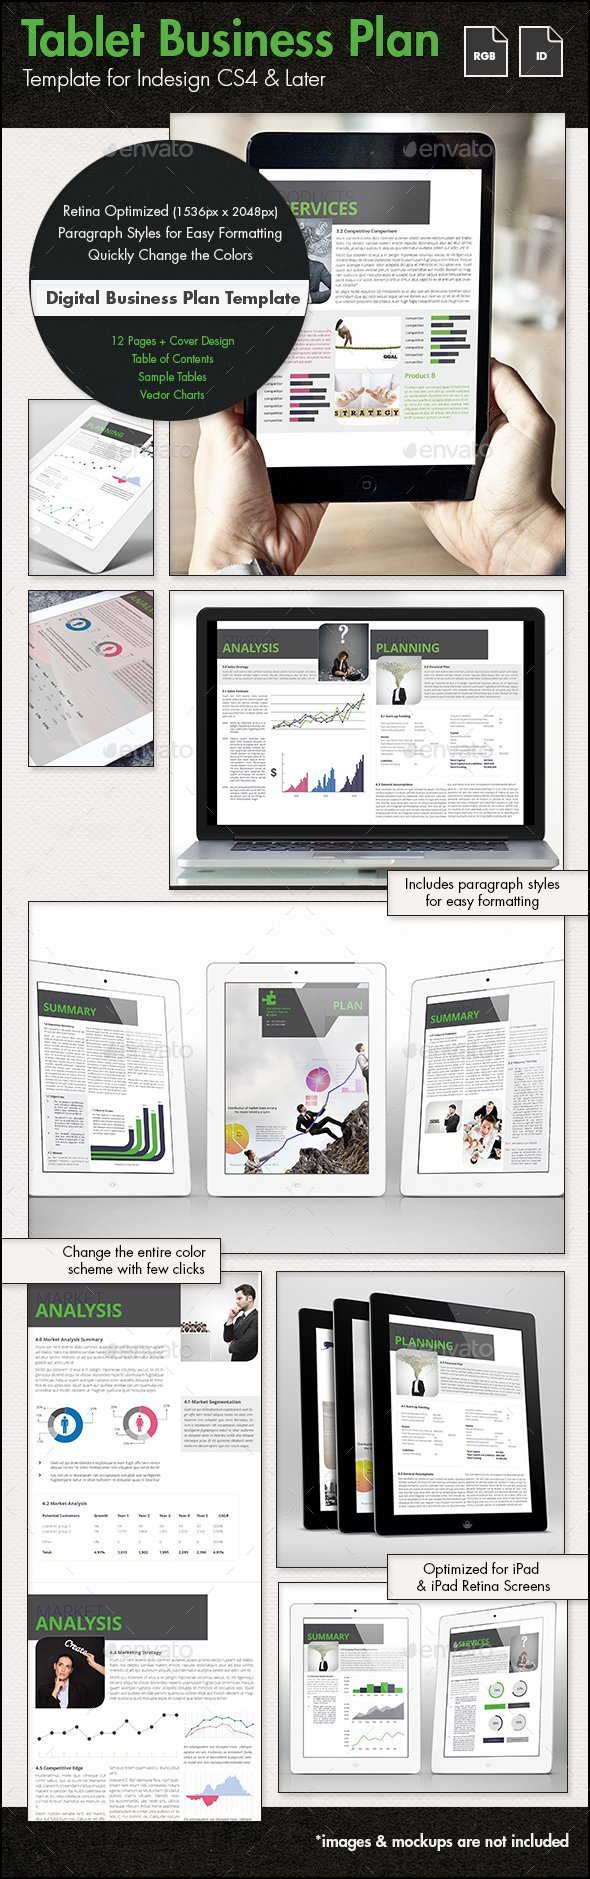 Business Plan Template for Tablets - Digital Books ePublishing